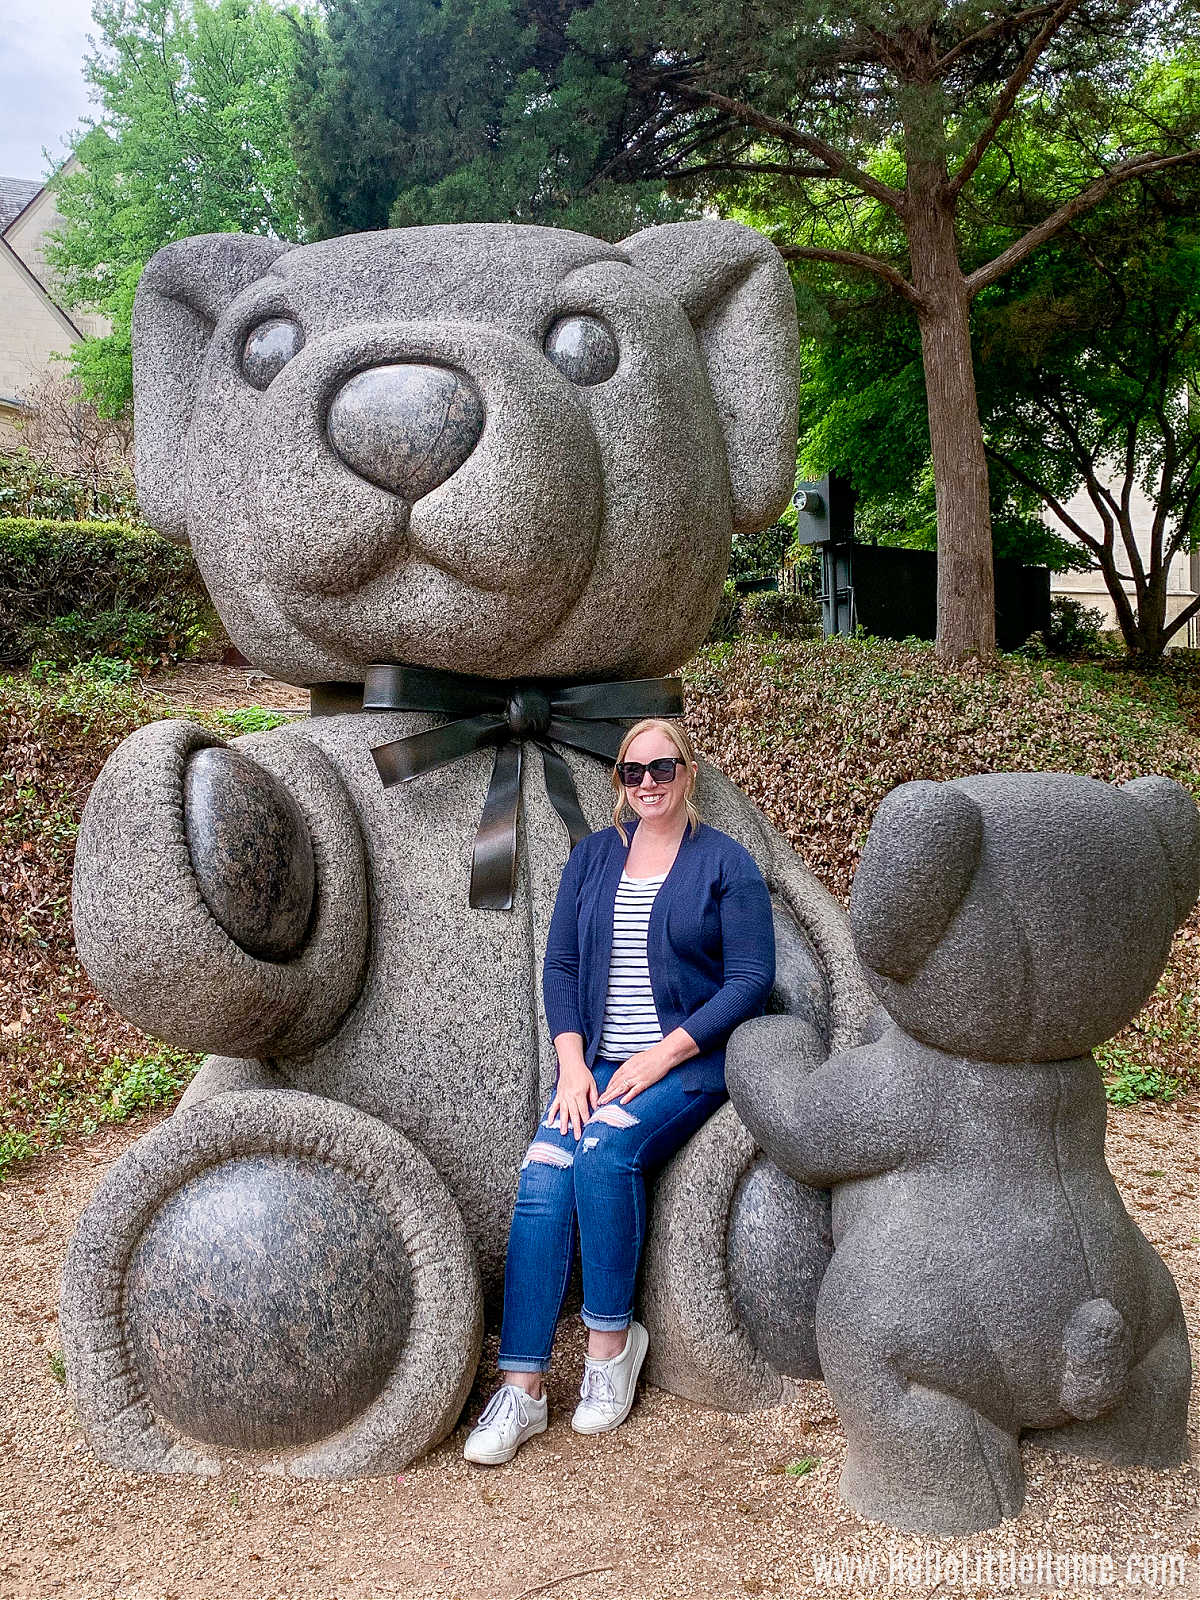 A woman sitting in the lap of a giant teddy statue in the park.